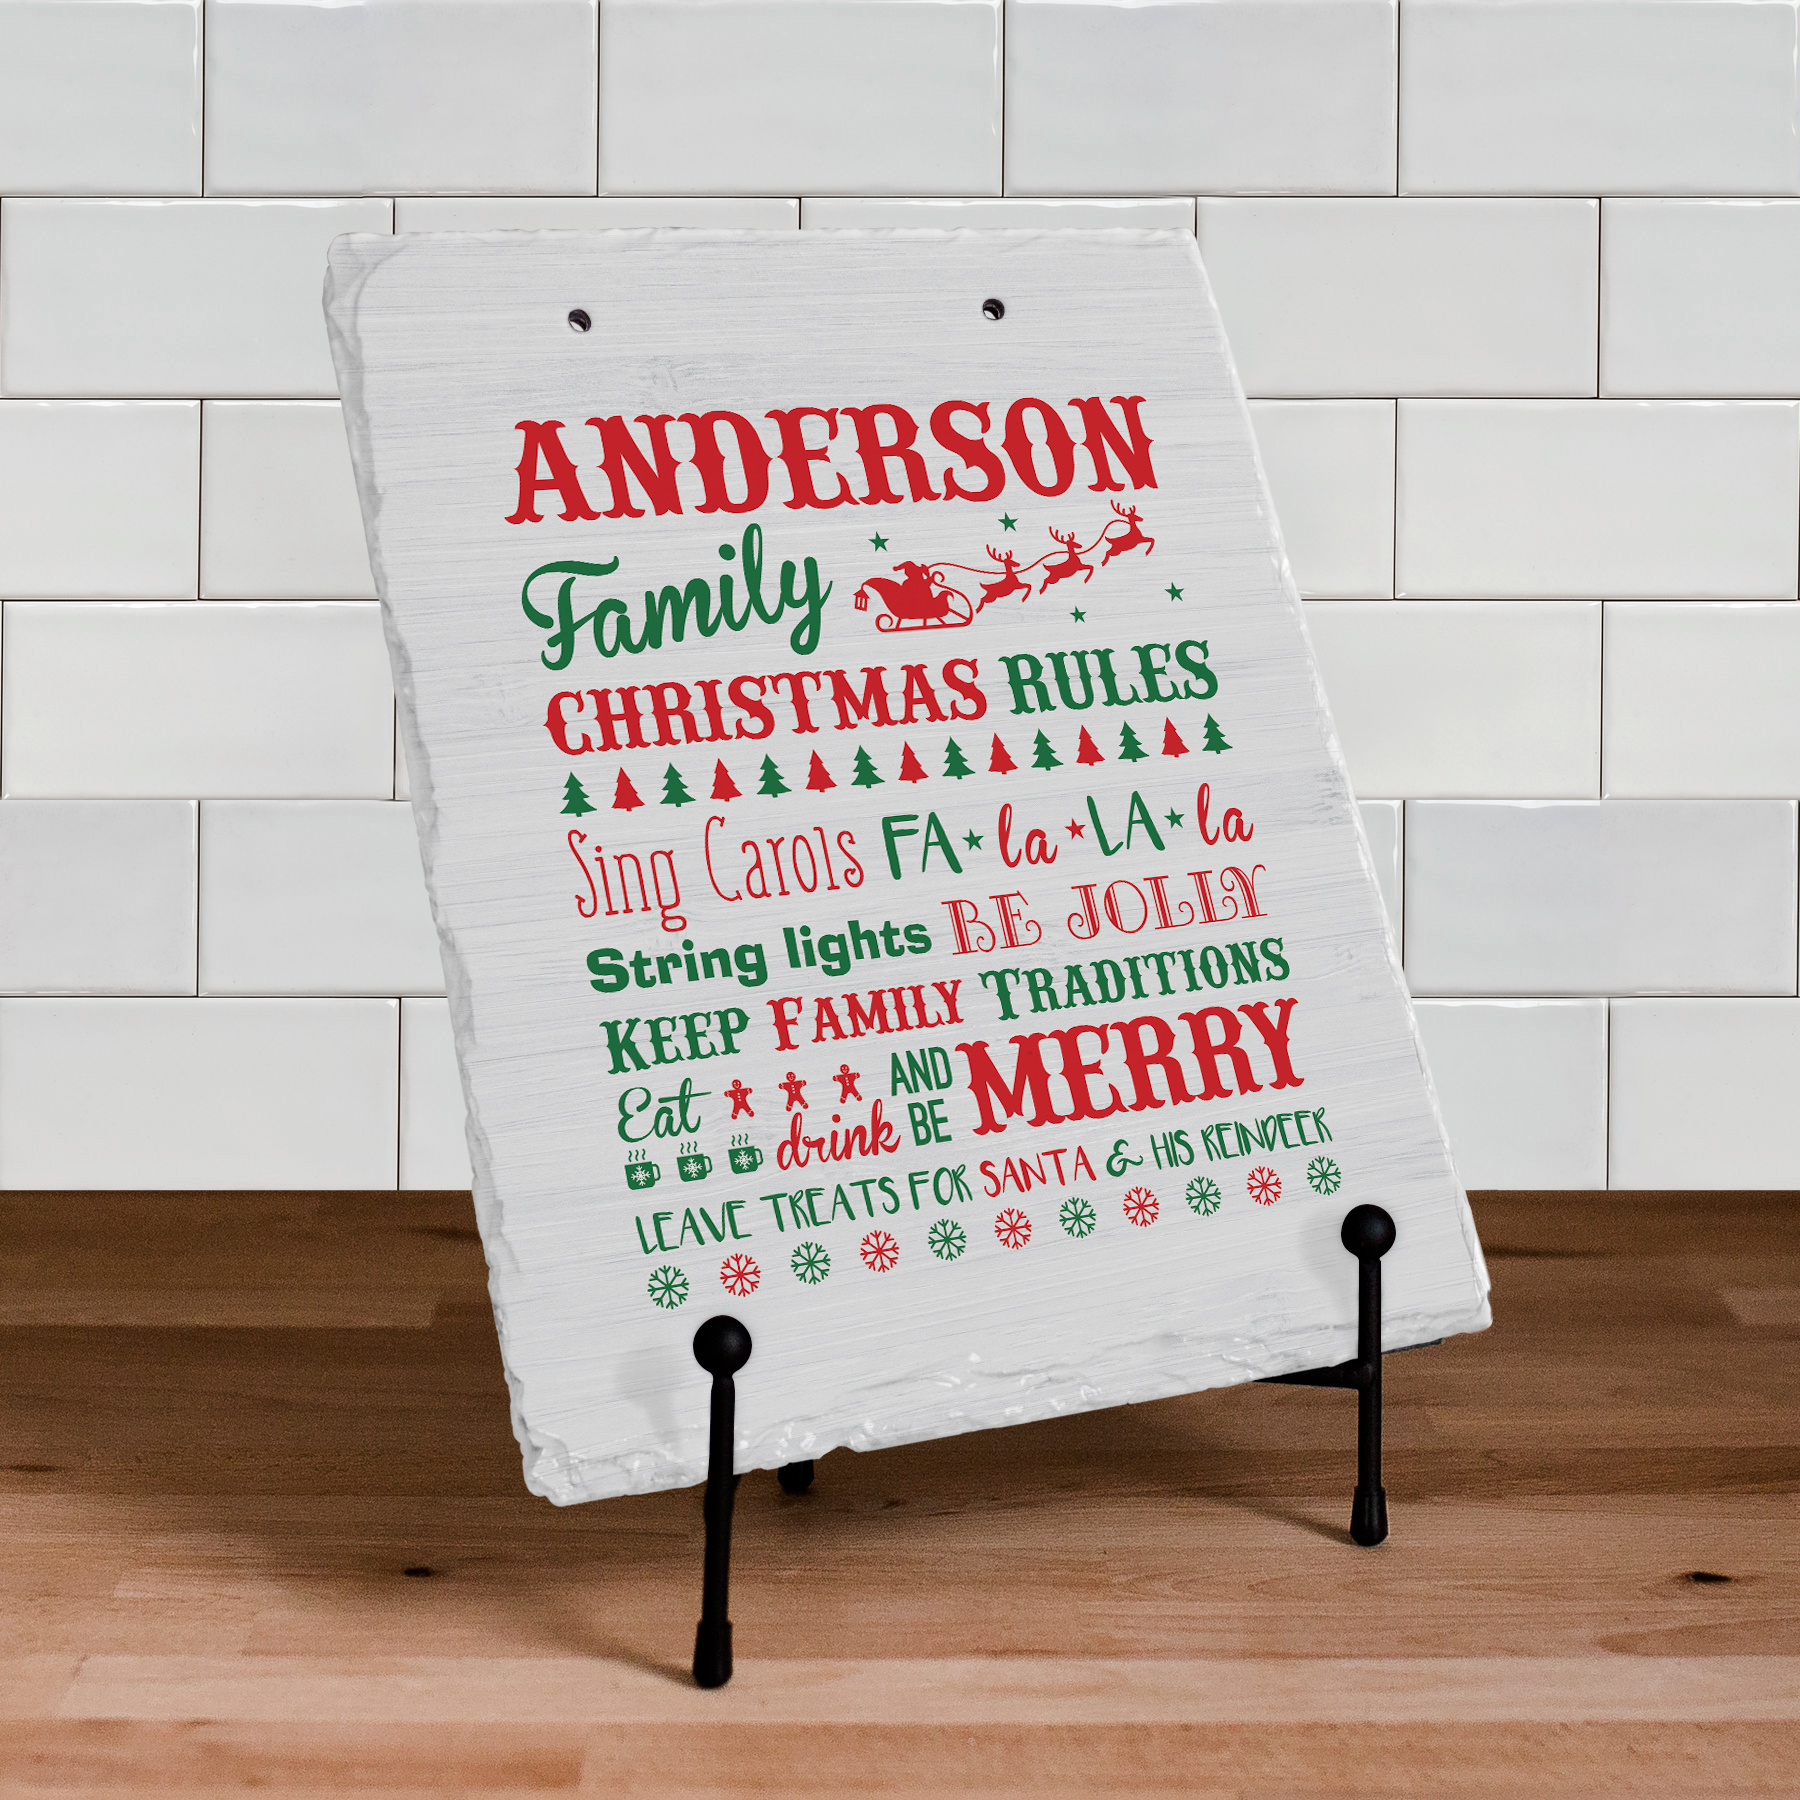 Personalized Christams Family Rules Doormat | Personalized Wall Sign For Christmas